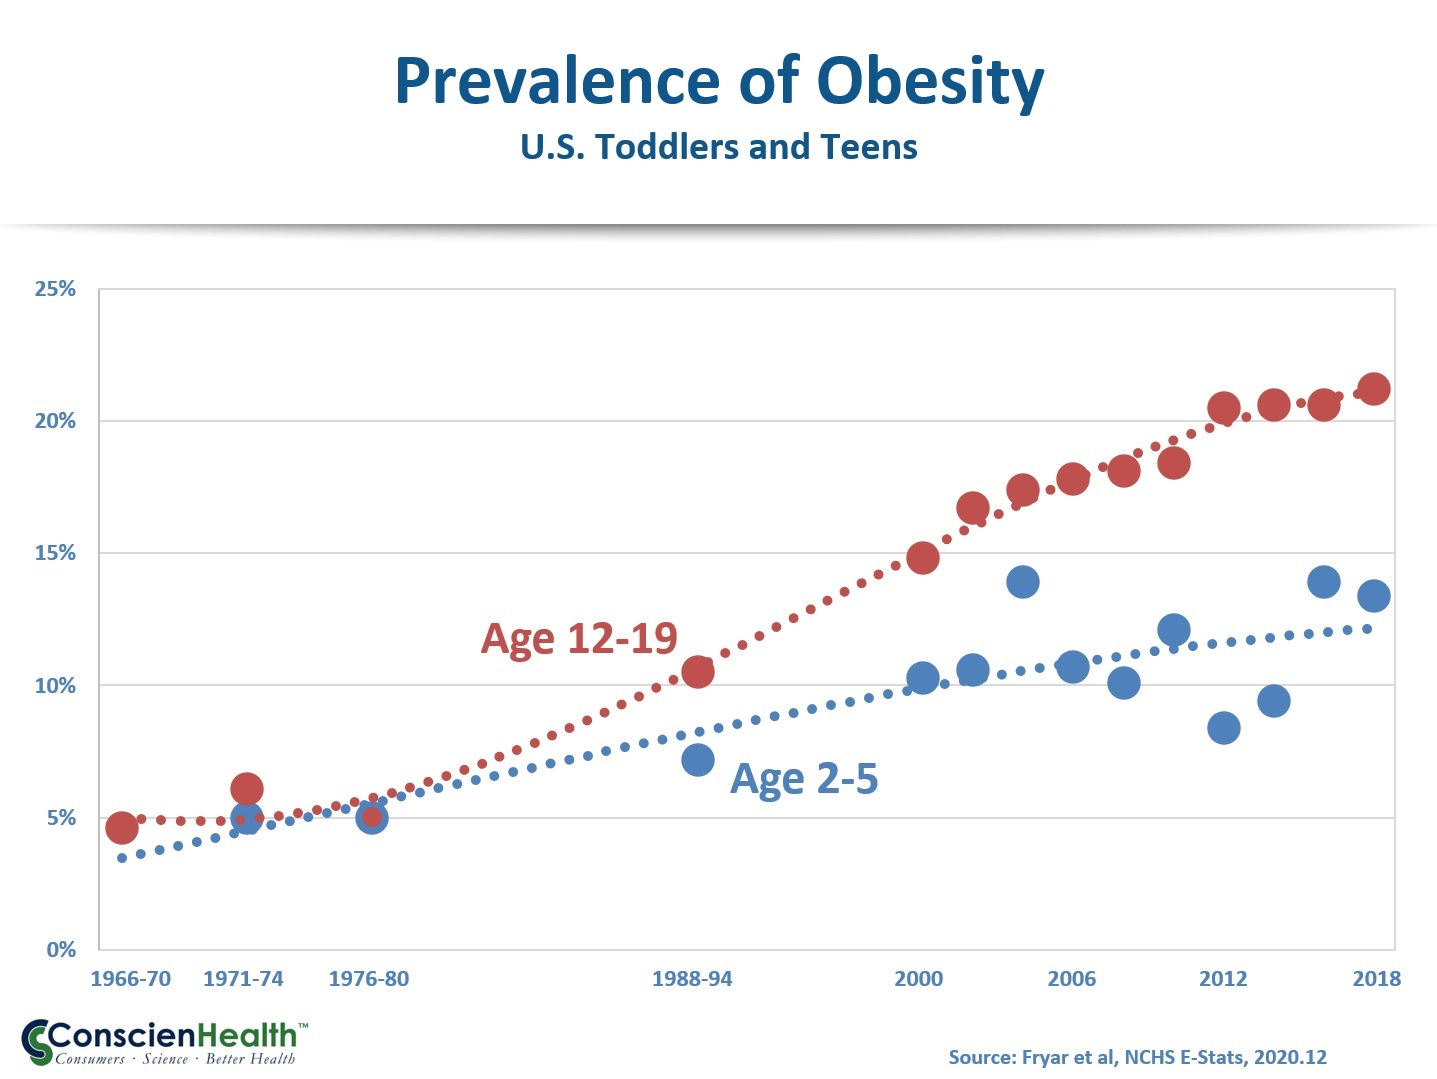 Obesity Prevalence Trends, U.S. Toddlers and Teens